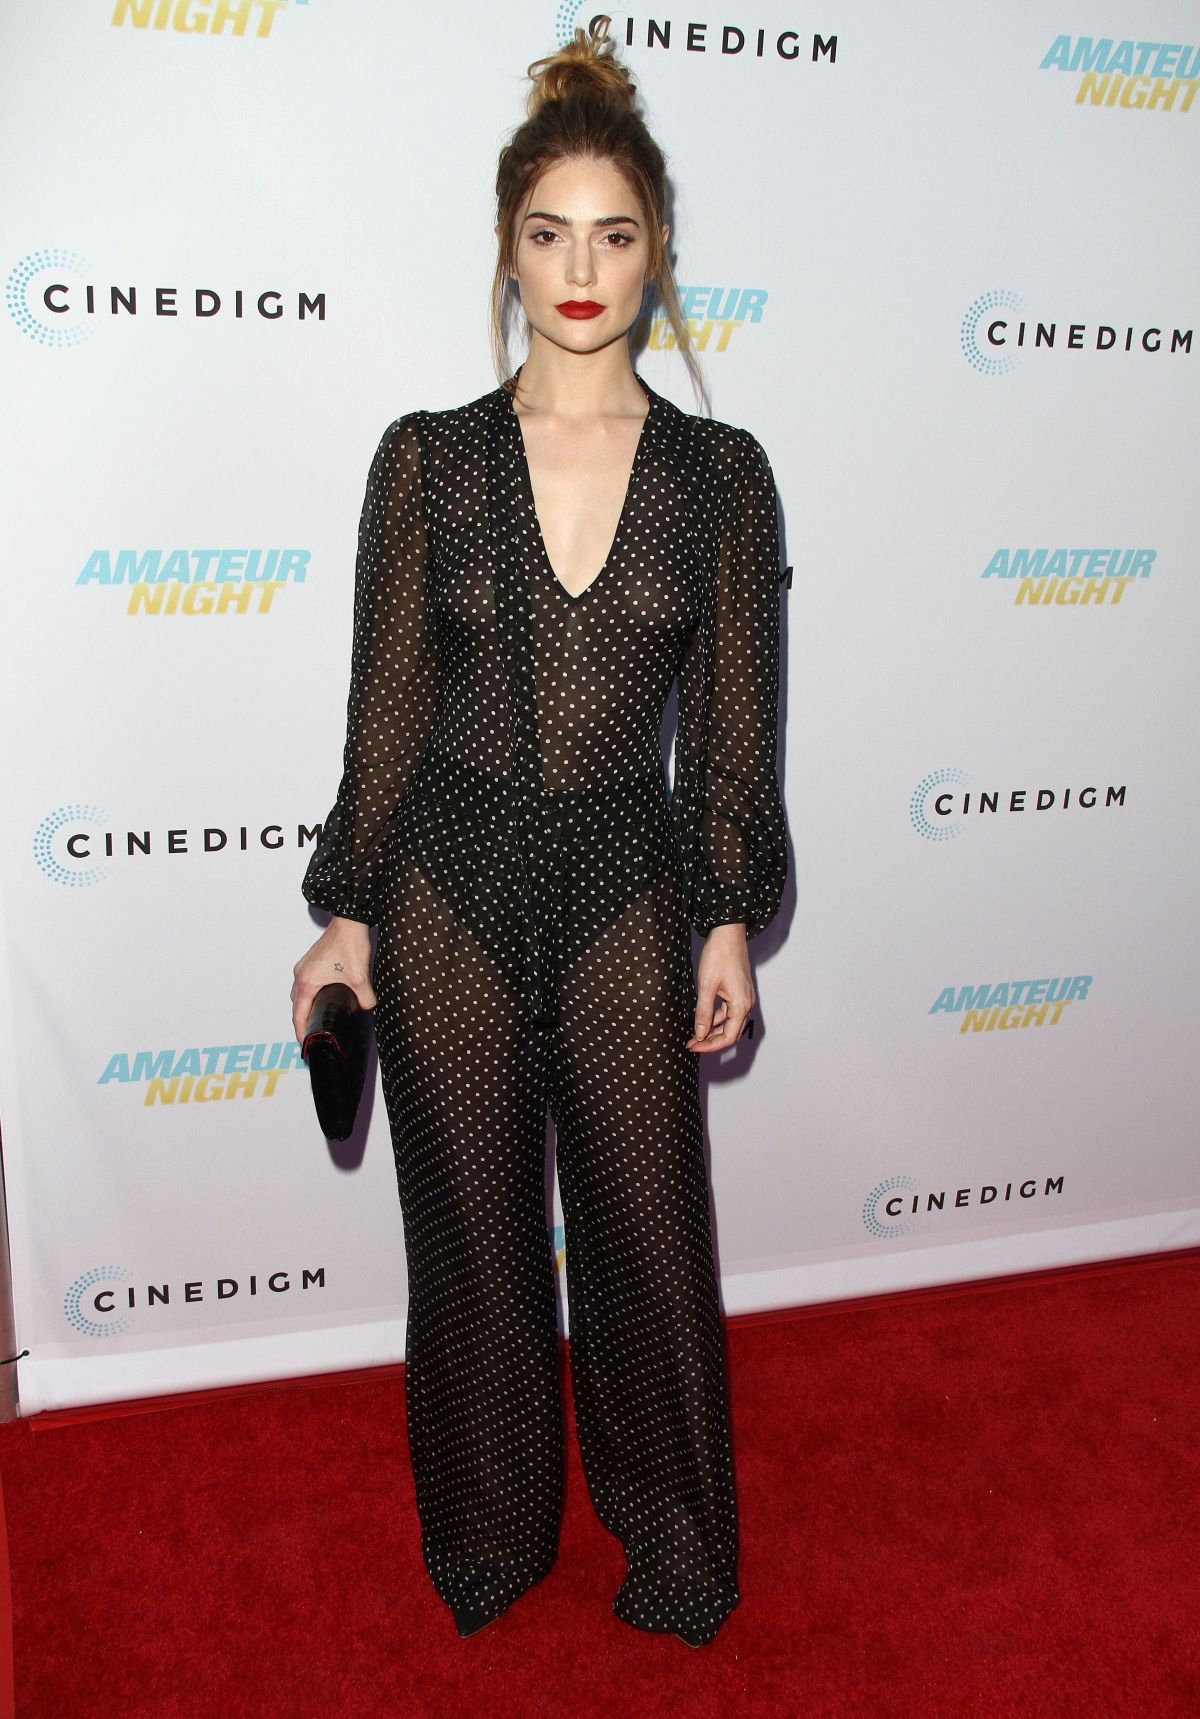 JANET MONTGOMERY at Amateur Night Premiere in Hollywood 07/25/2016